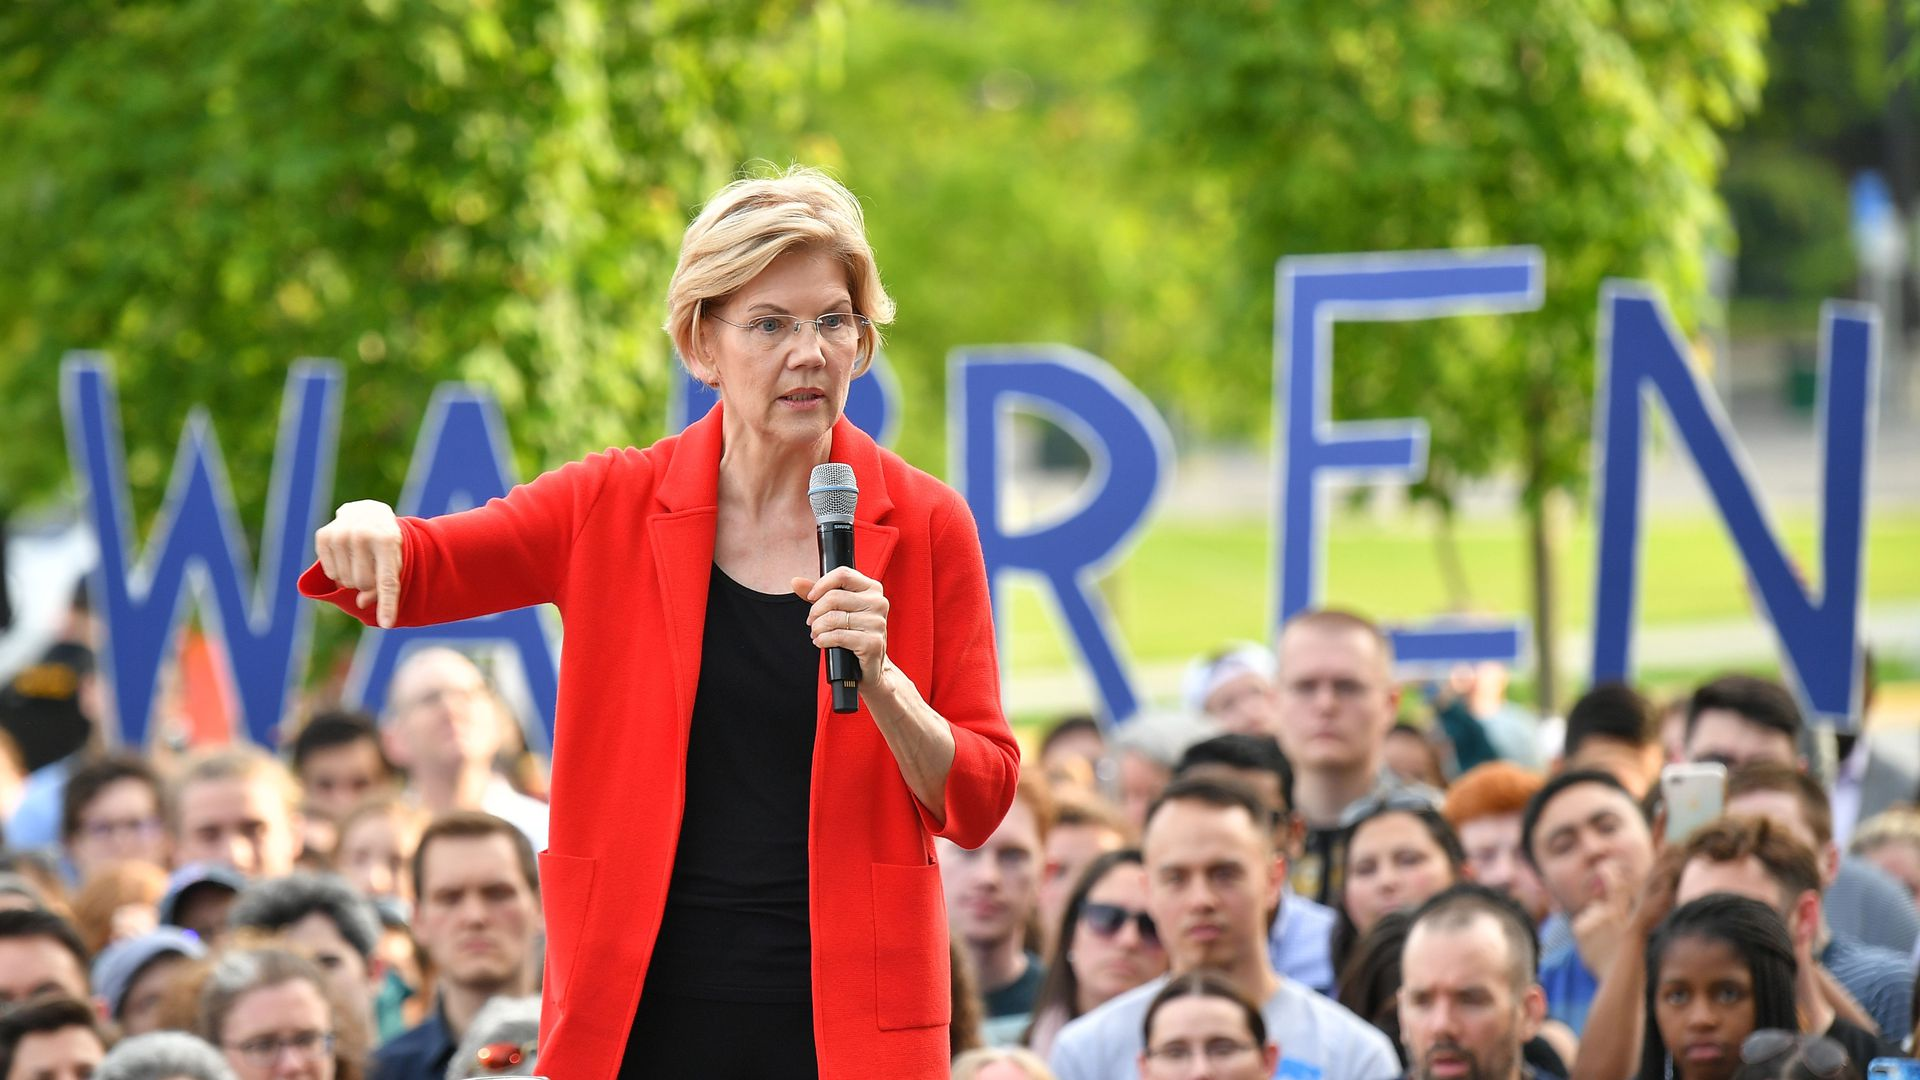 Democratic presidential candidate Elizabeth Warren gestures as she speaks during a campaign stop